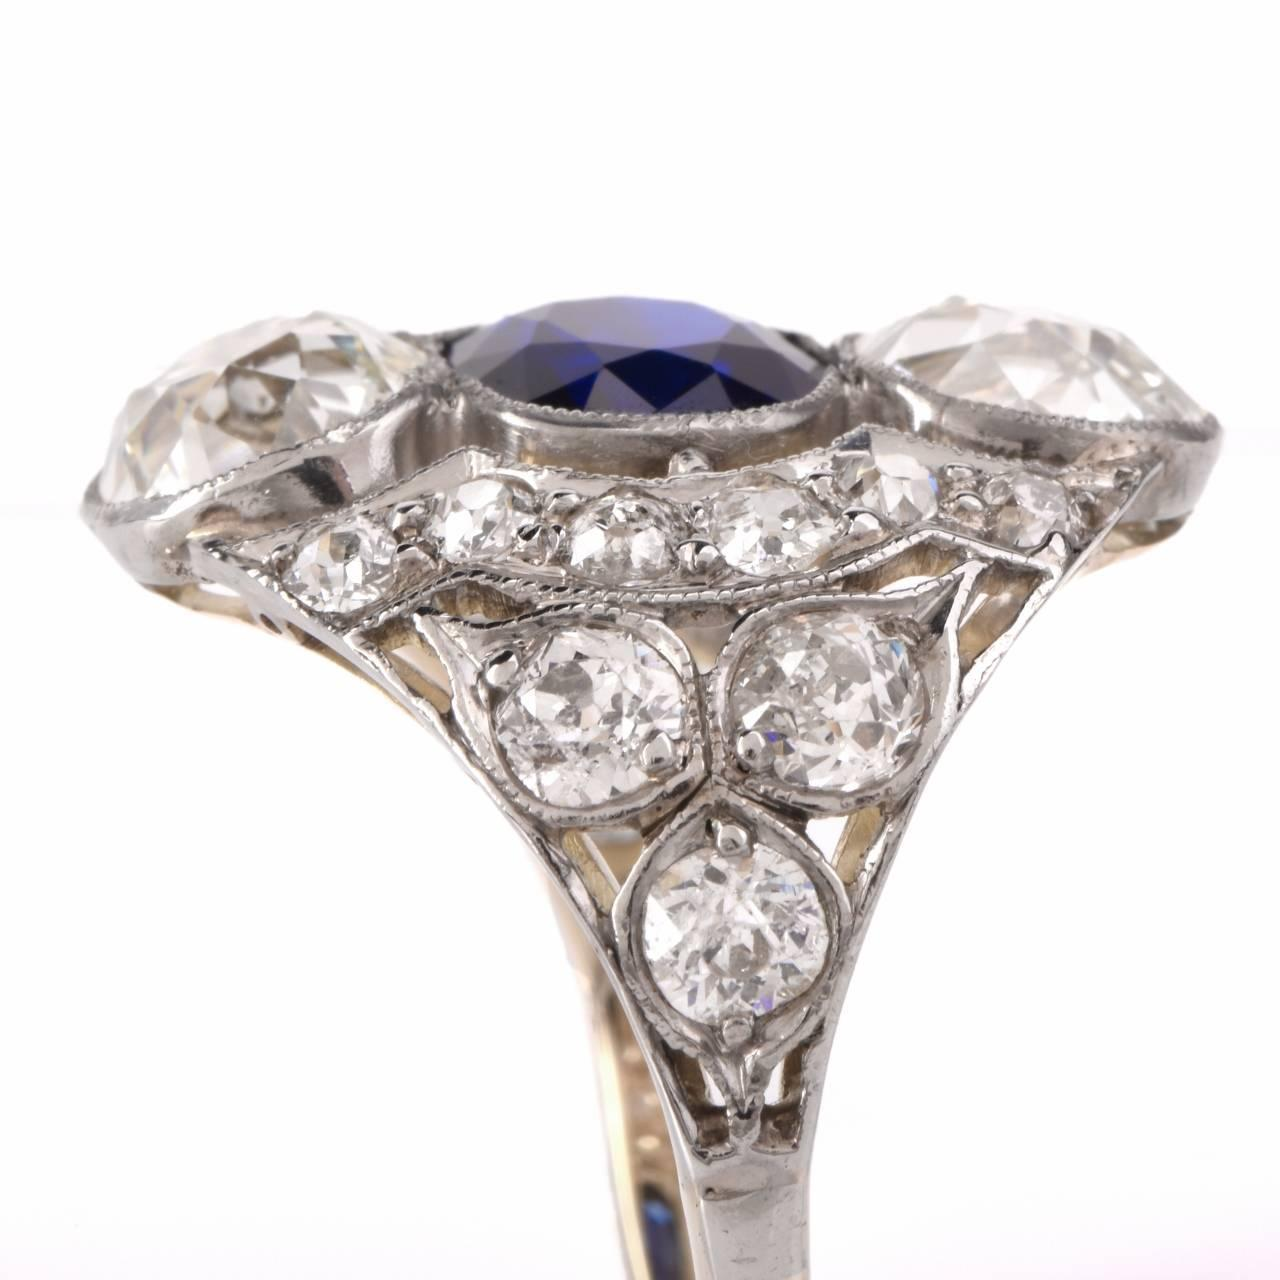 old wedding rings for sale wedding rings for sale old wedding rings for sale hd gallery